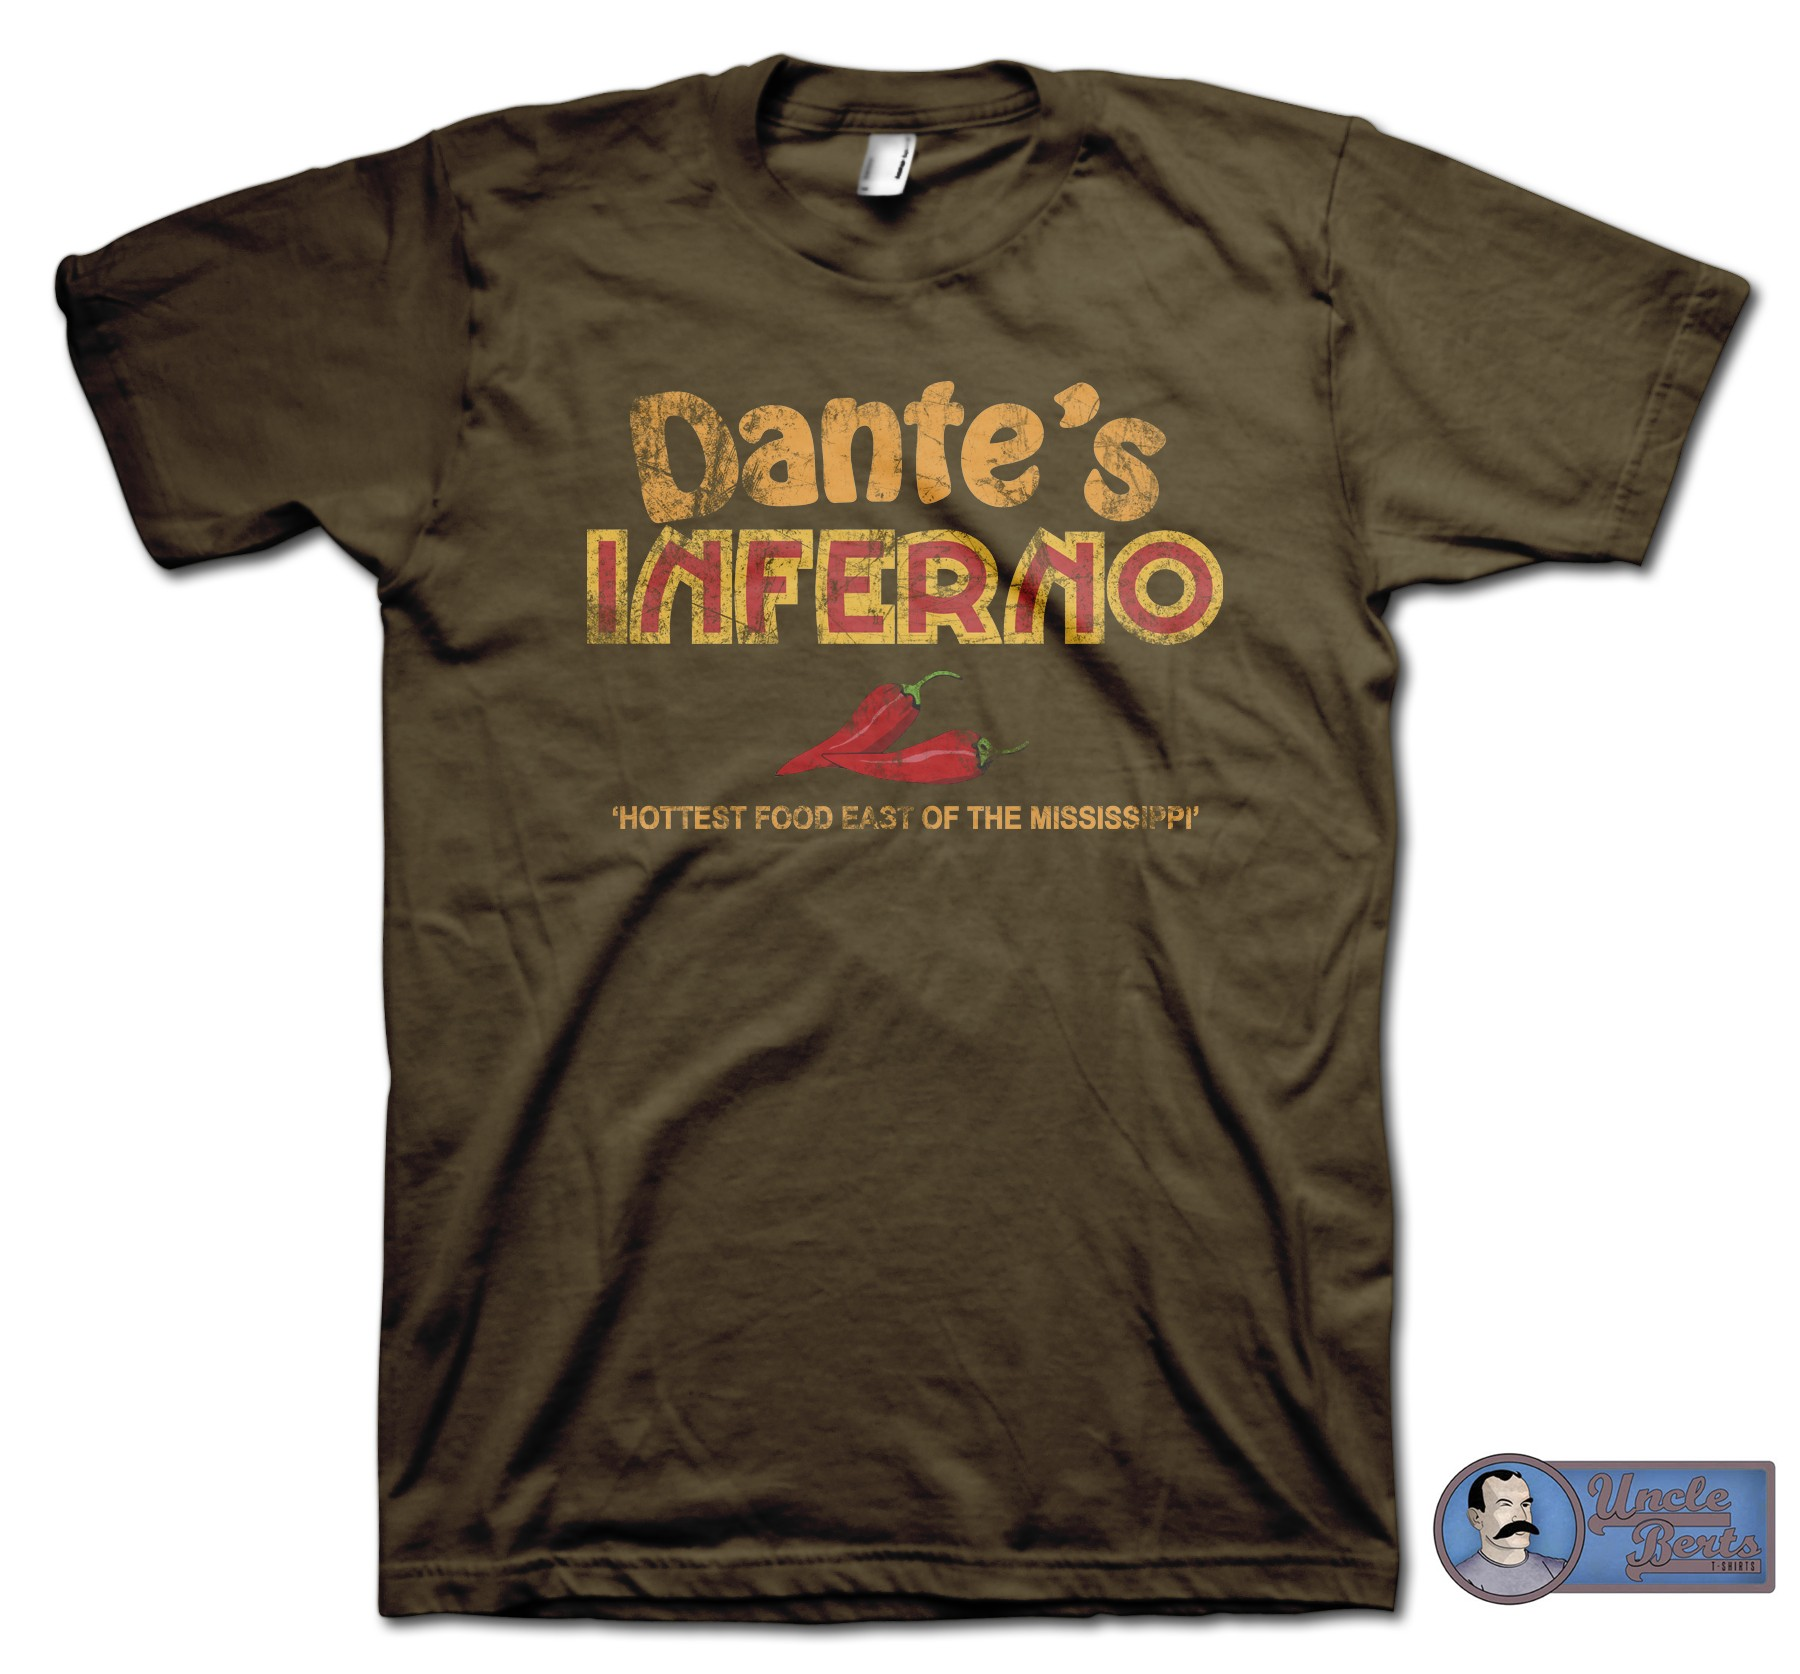 Dumb and Dumber (1994) inspired Dante's Inferno T-Shirt